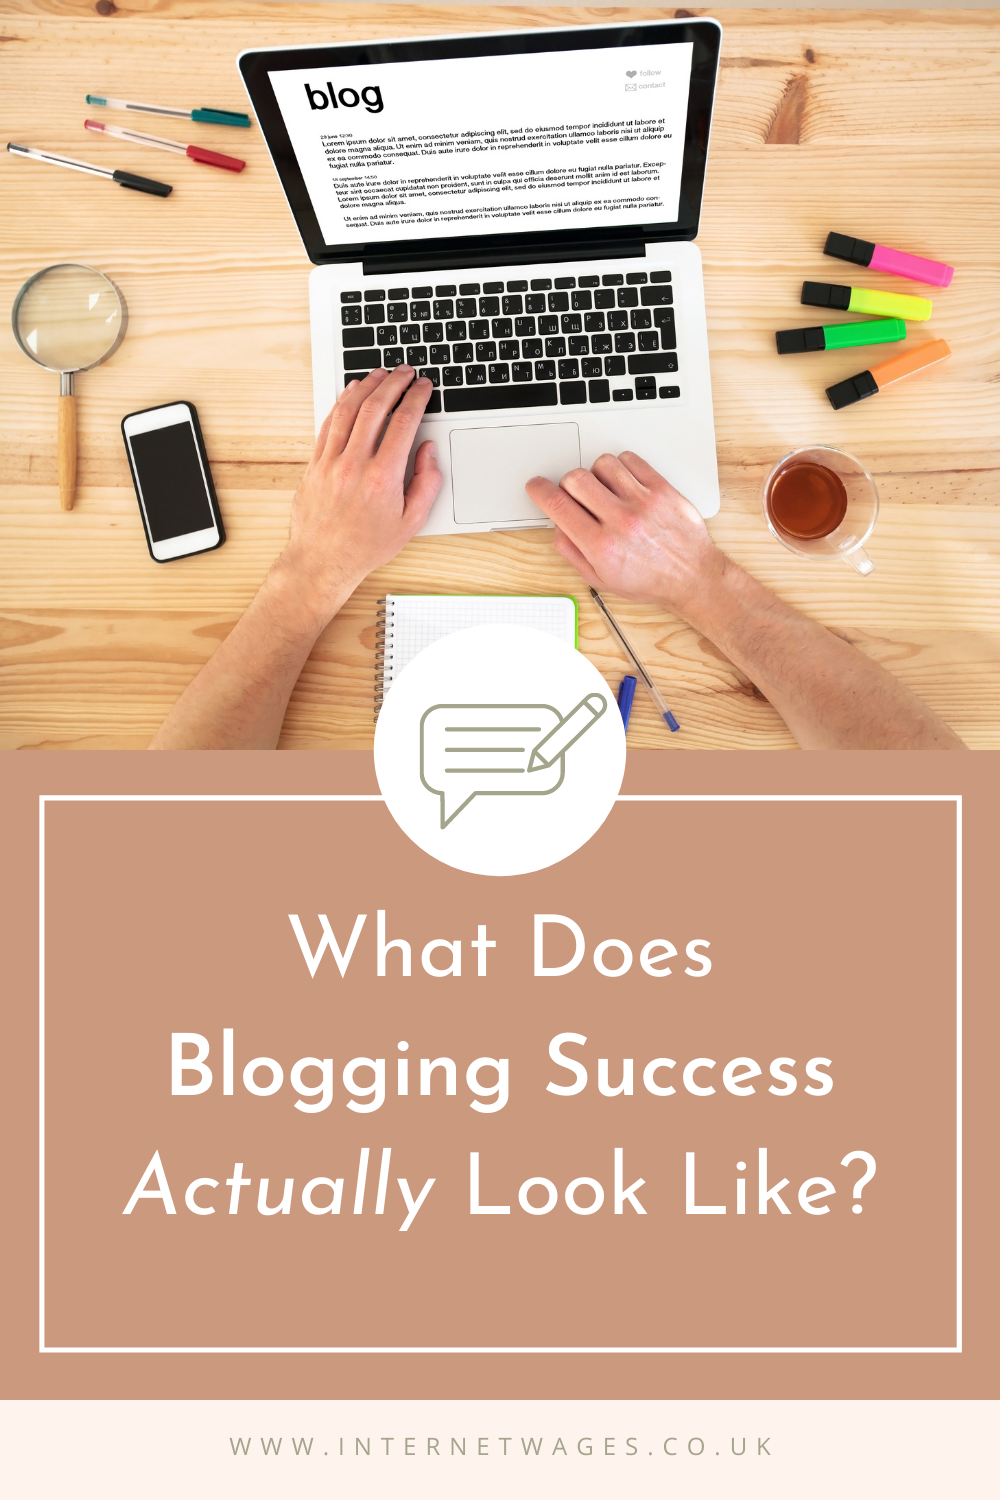 What Does Blogging Success Look Like?